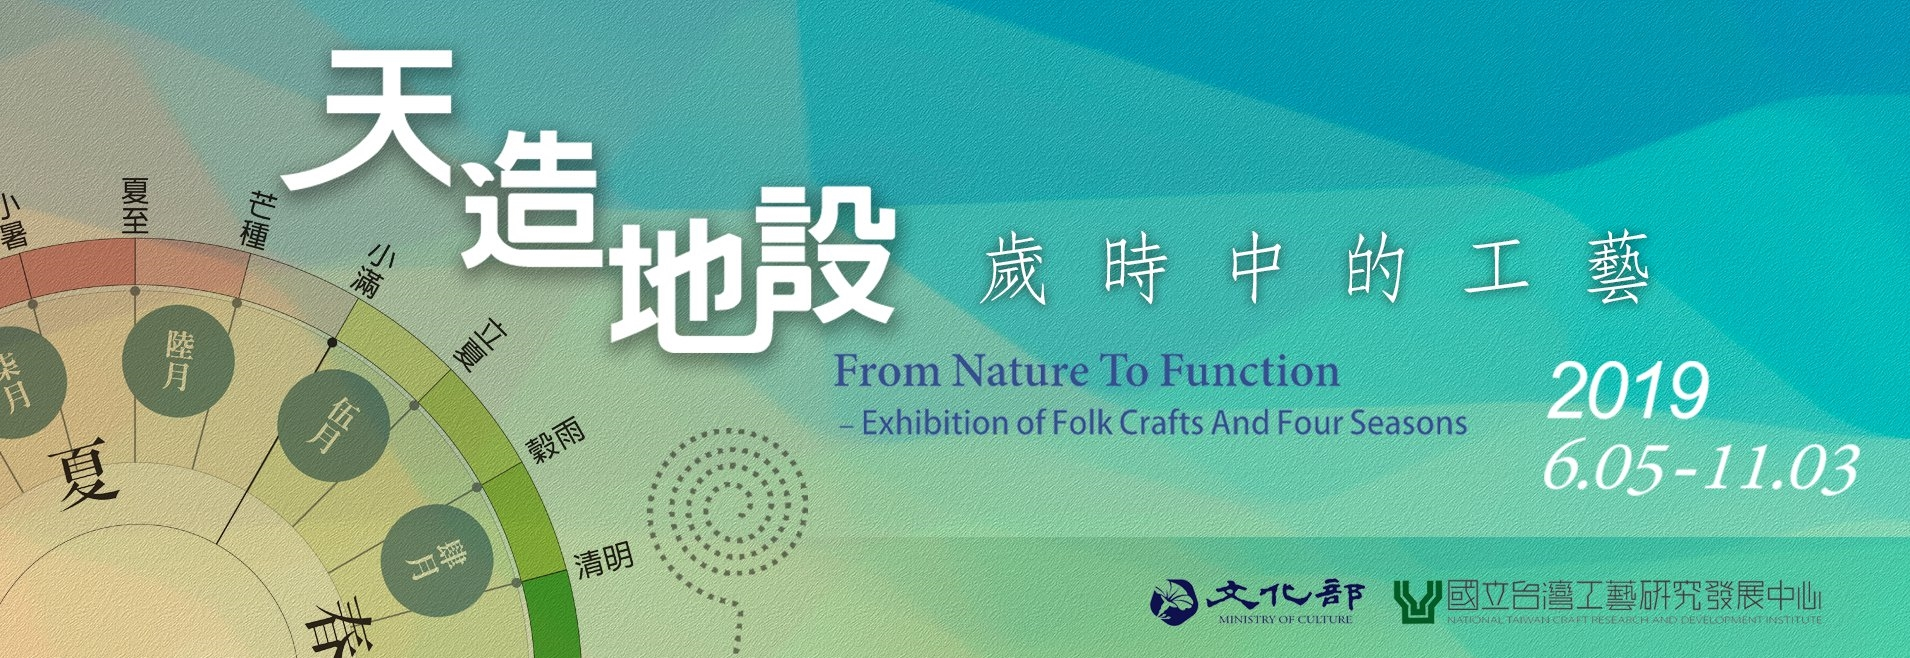 From Nature To Function - Exhibition of Folk Crafts And Four Seasons[另開新視窗]